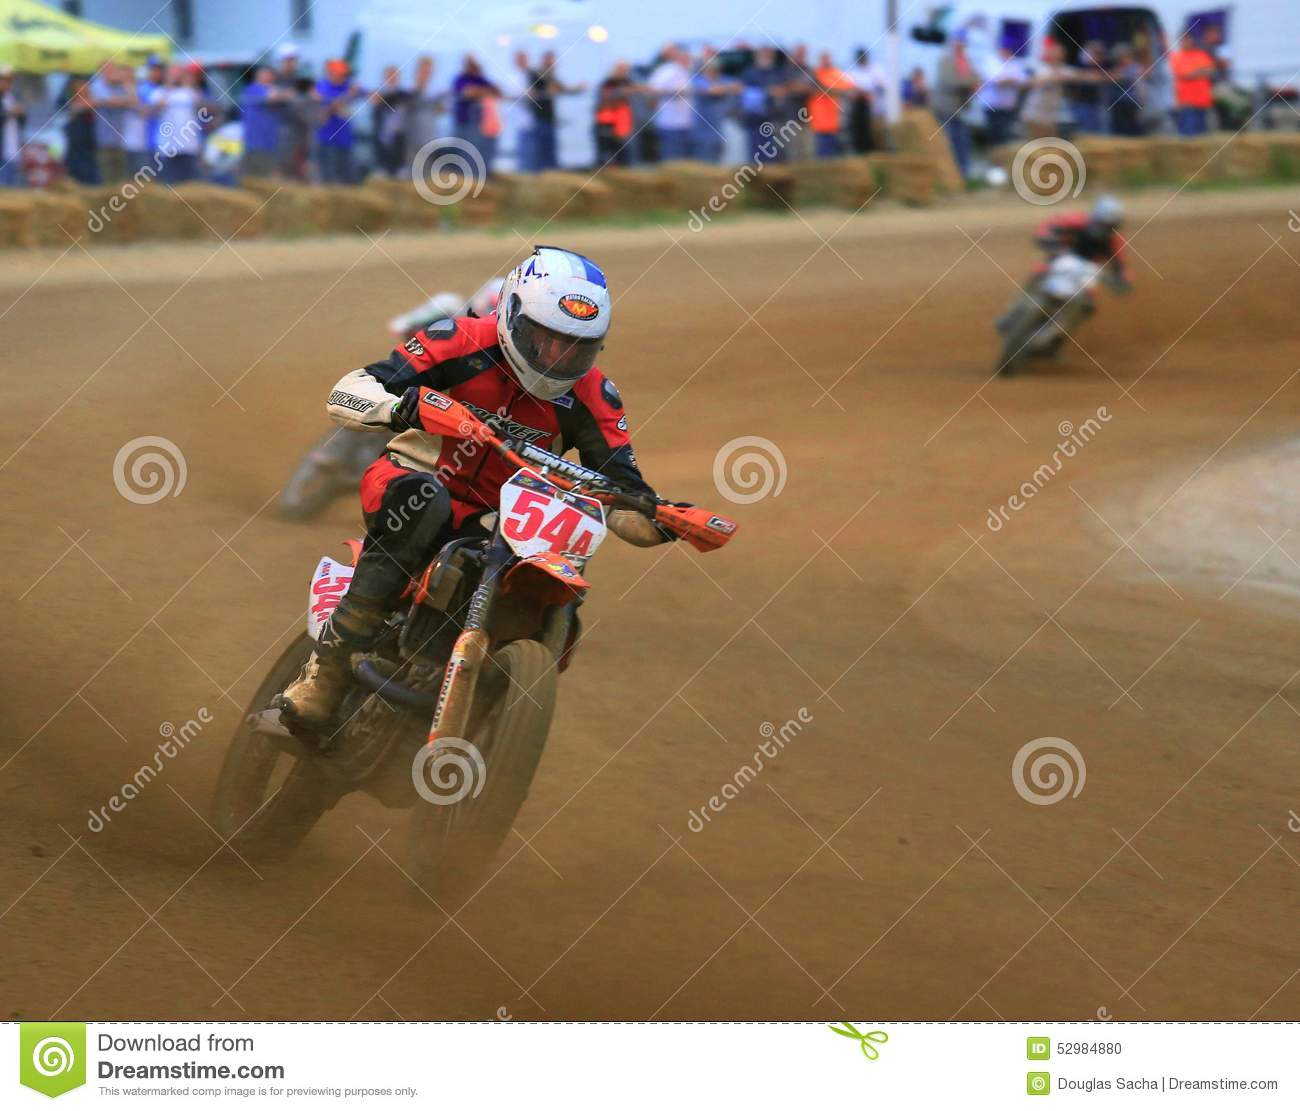 Pro track motorcycle race